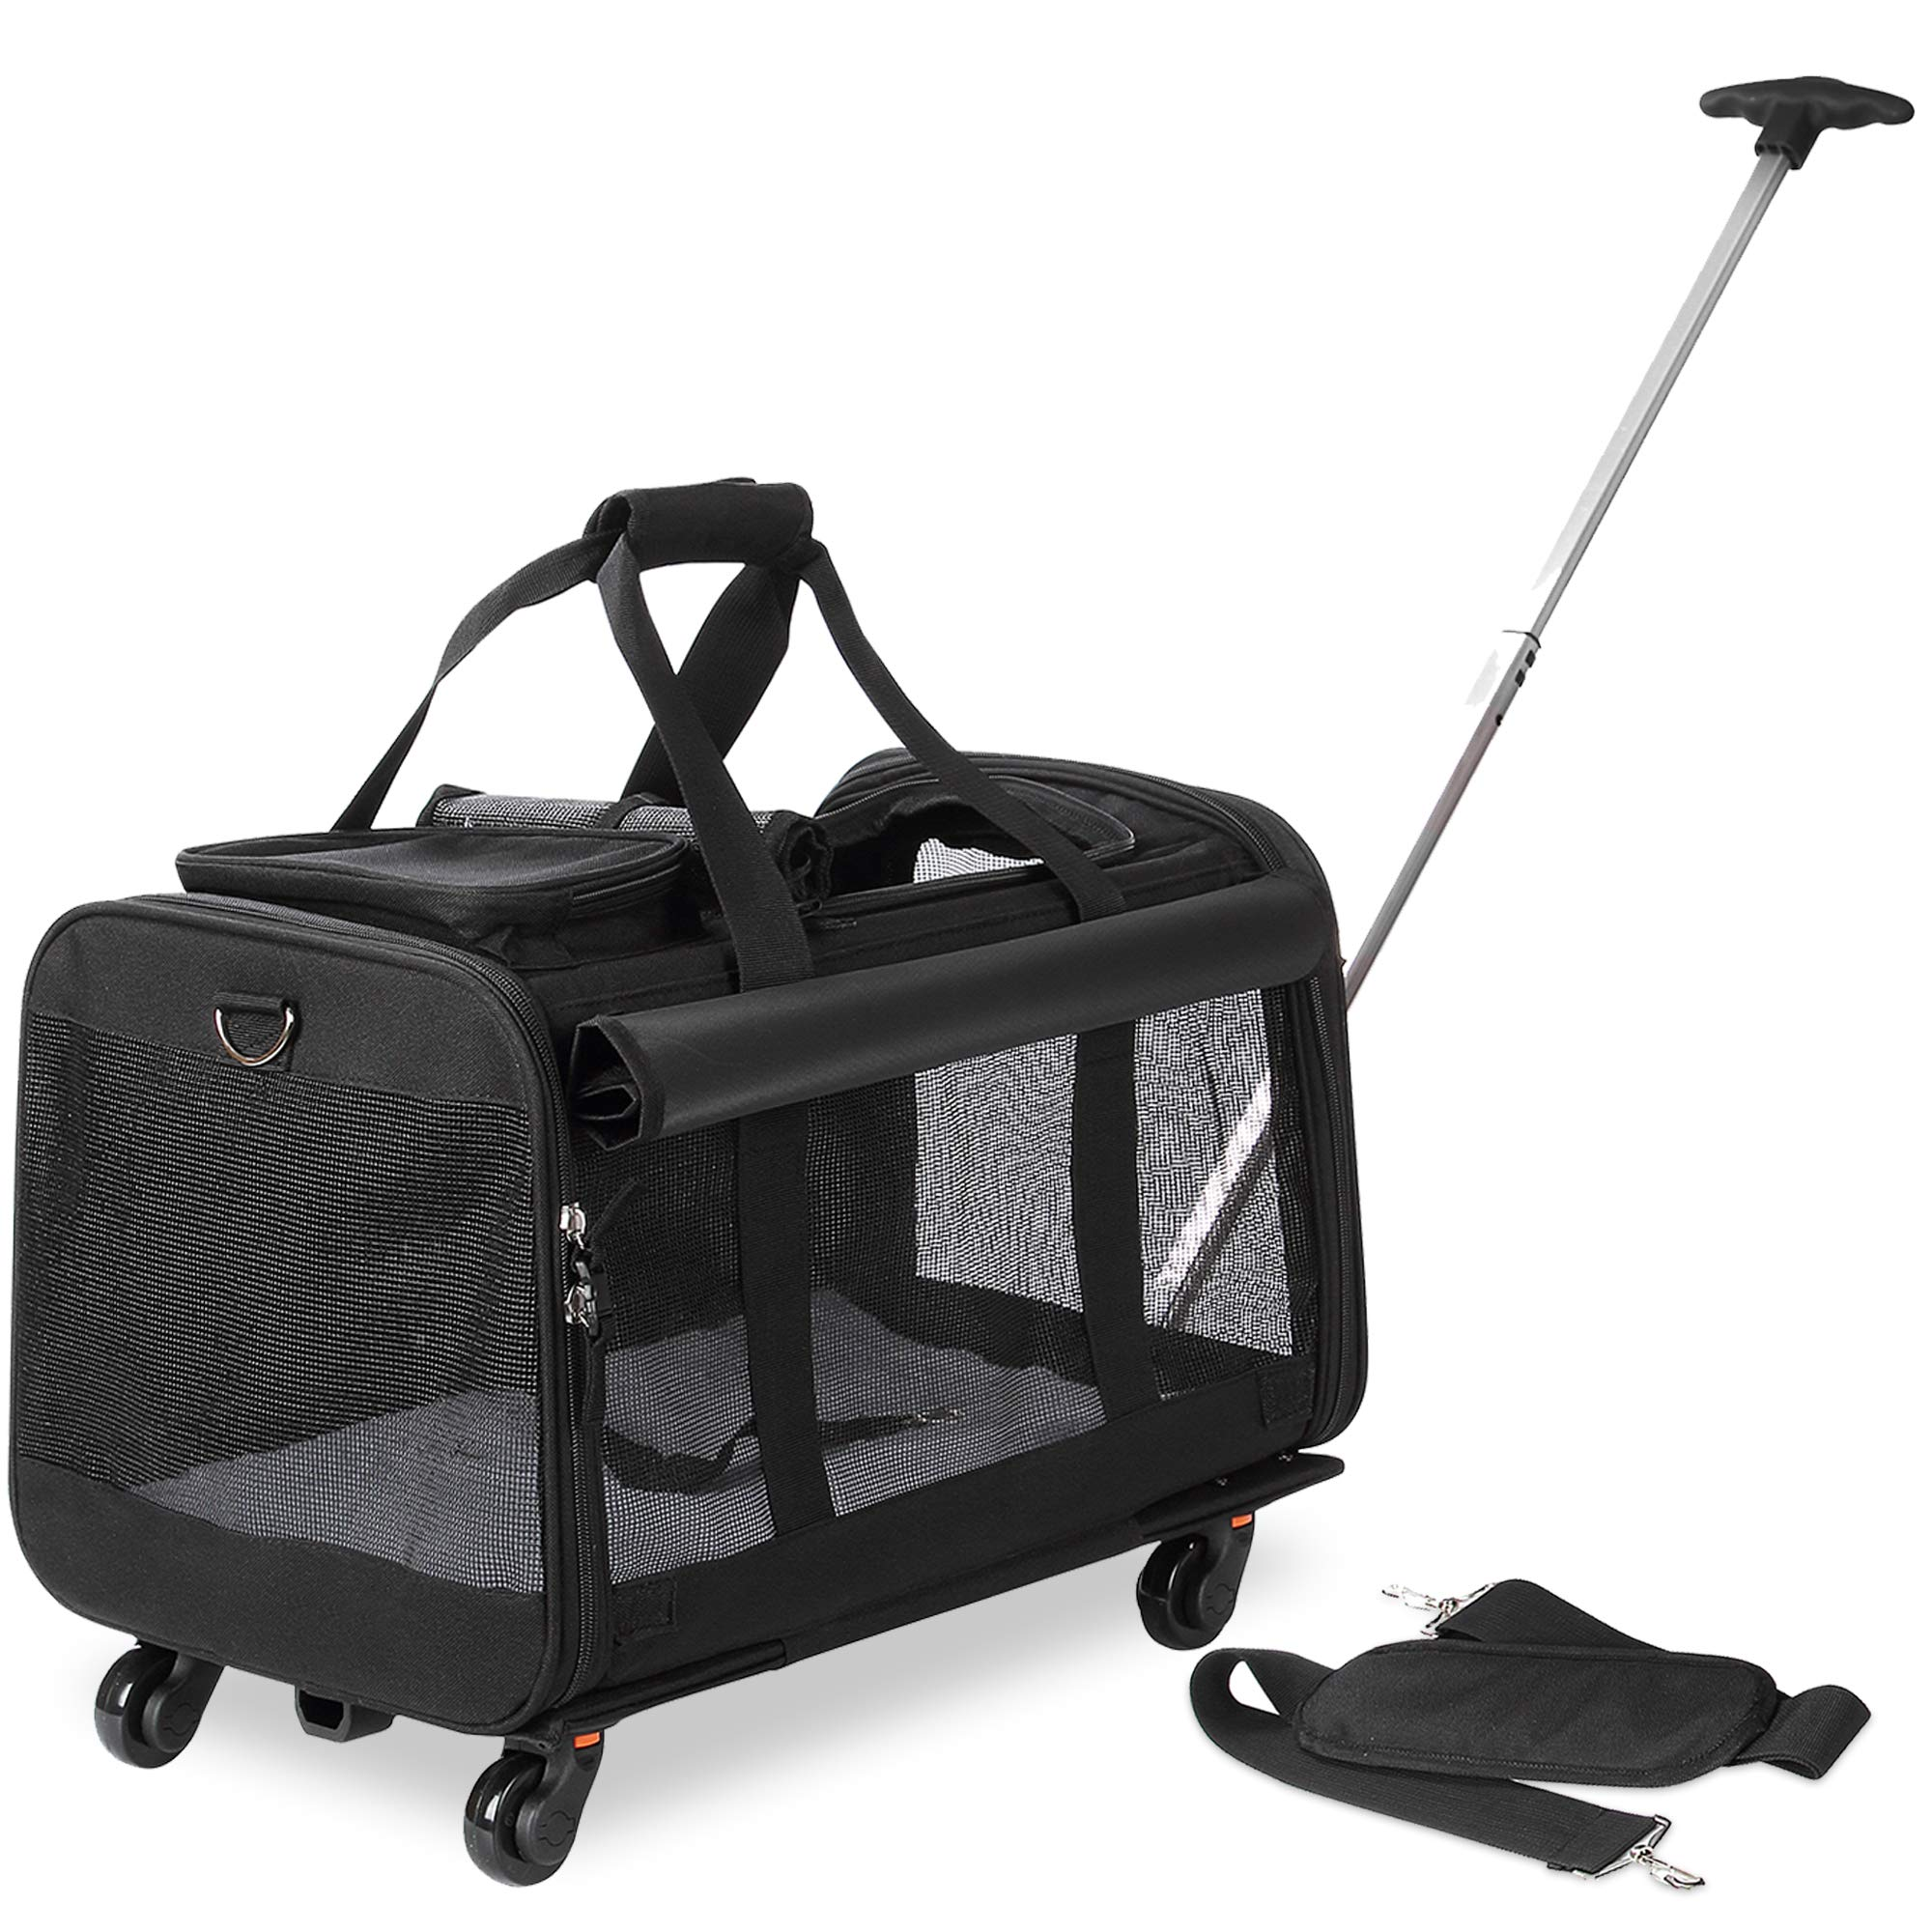 Kundu Pet Carrier with Detachable Wheels for Small & Medium Dogs & Cats - Black by Kundu